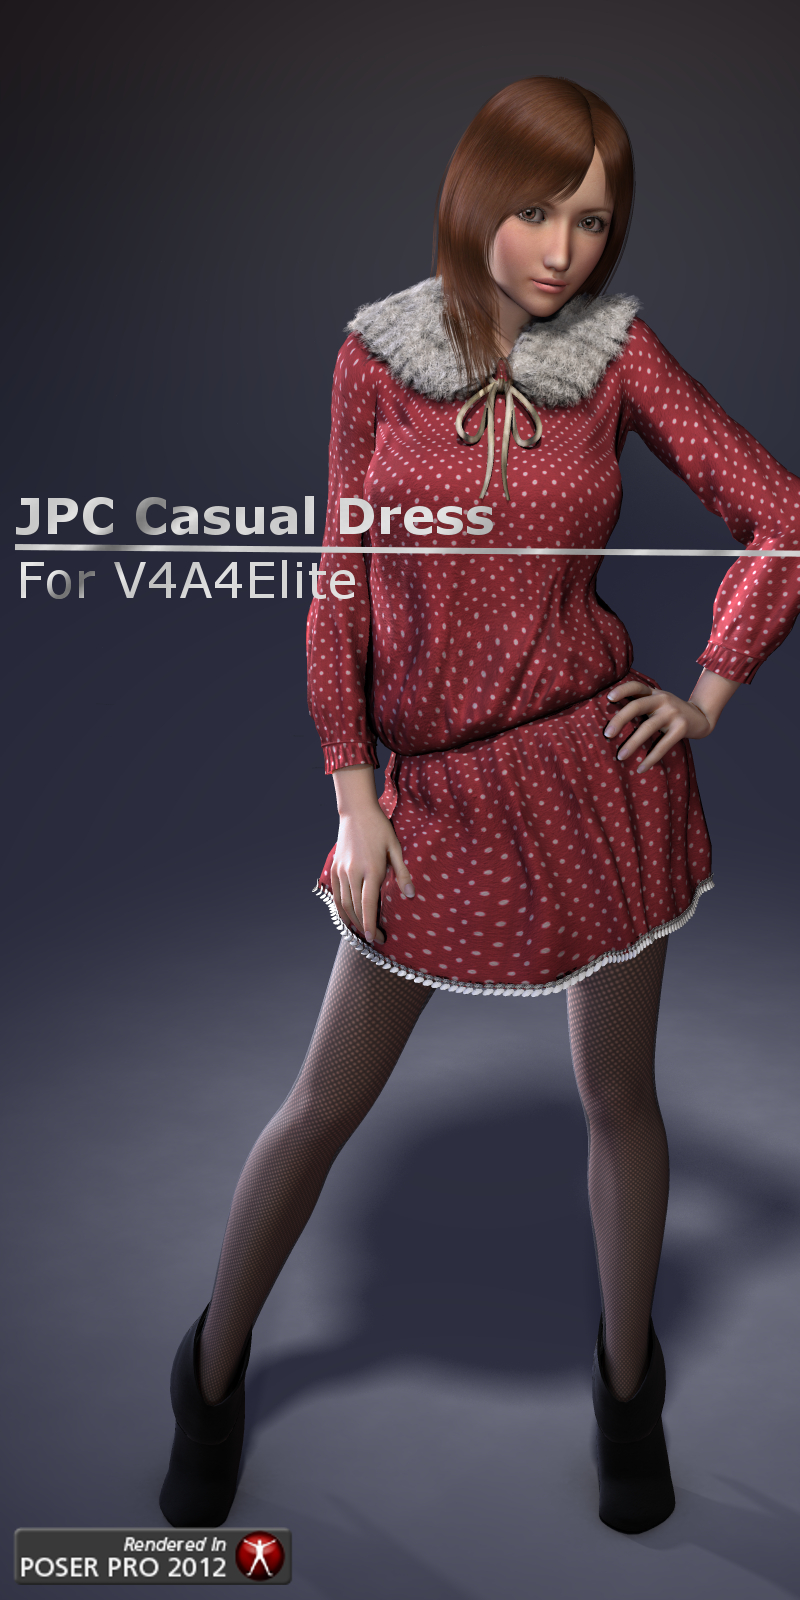 JPC Casual Dress